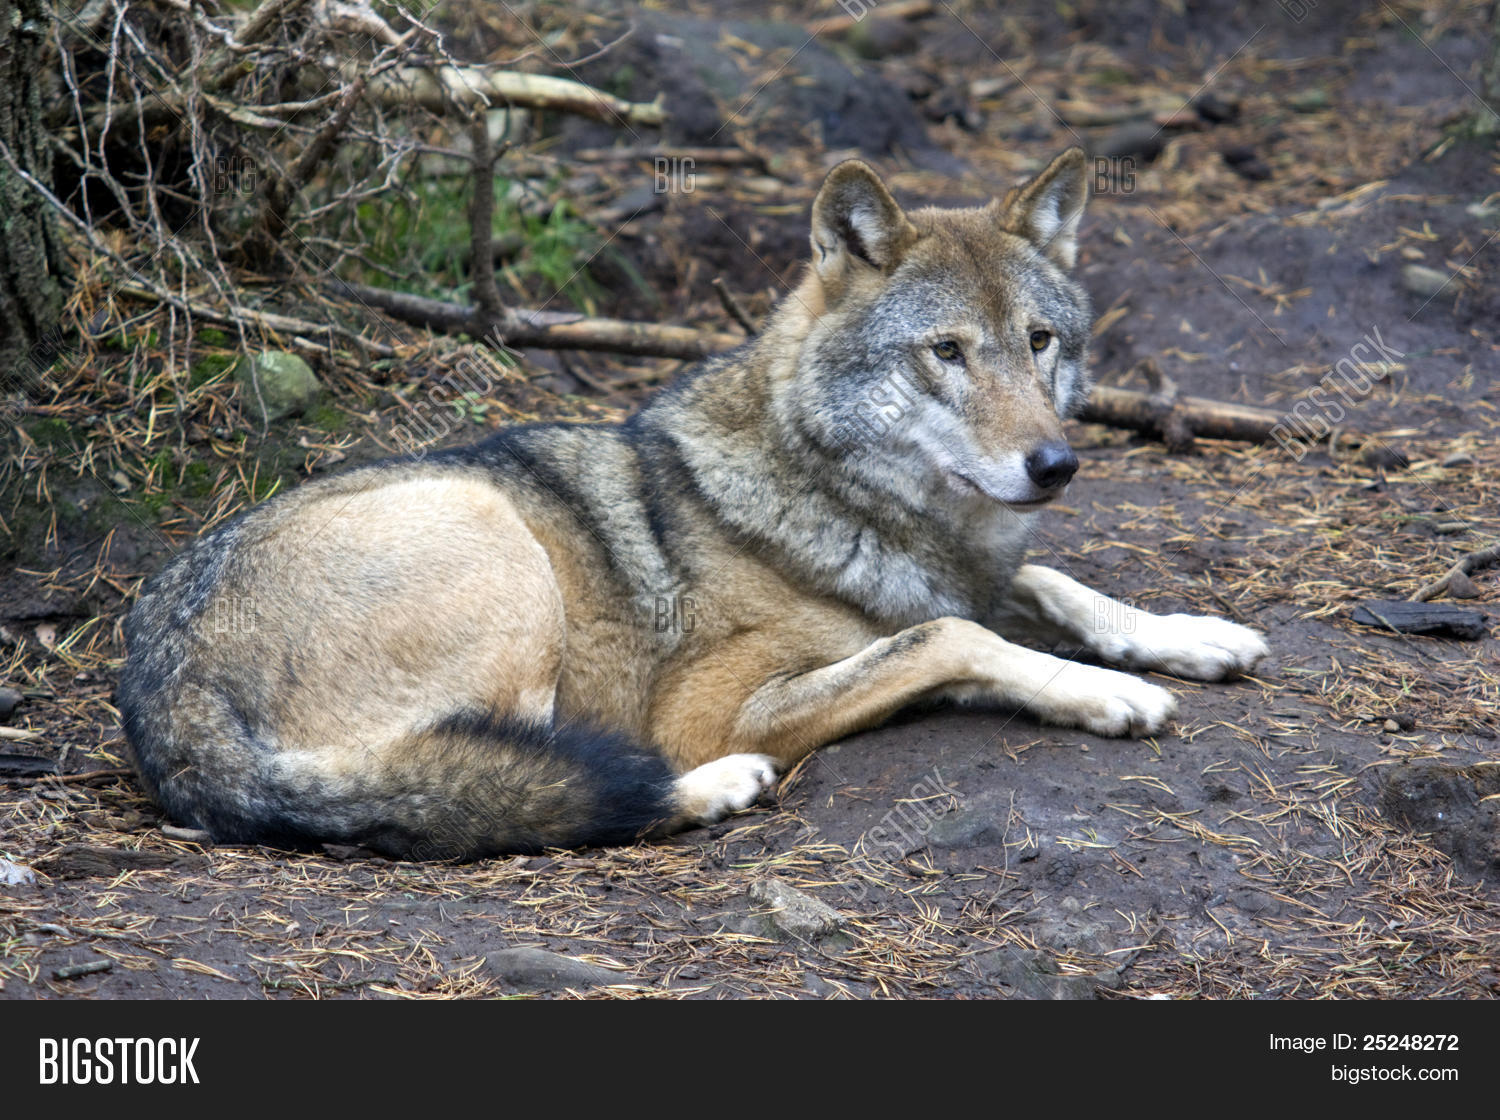 European Grey Wolf Sitting Down Image & Photo | Bigstock